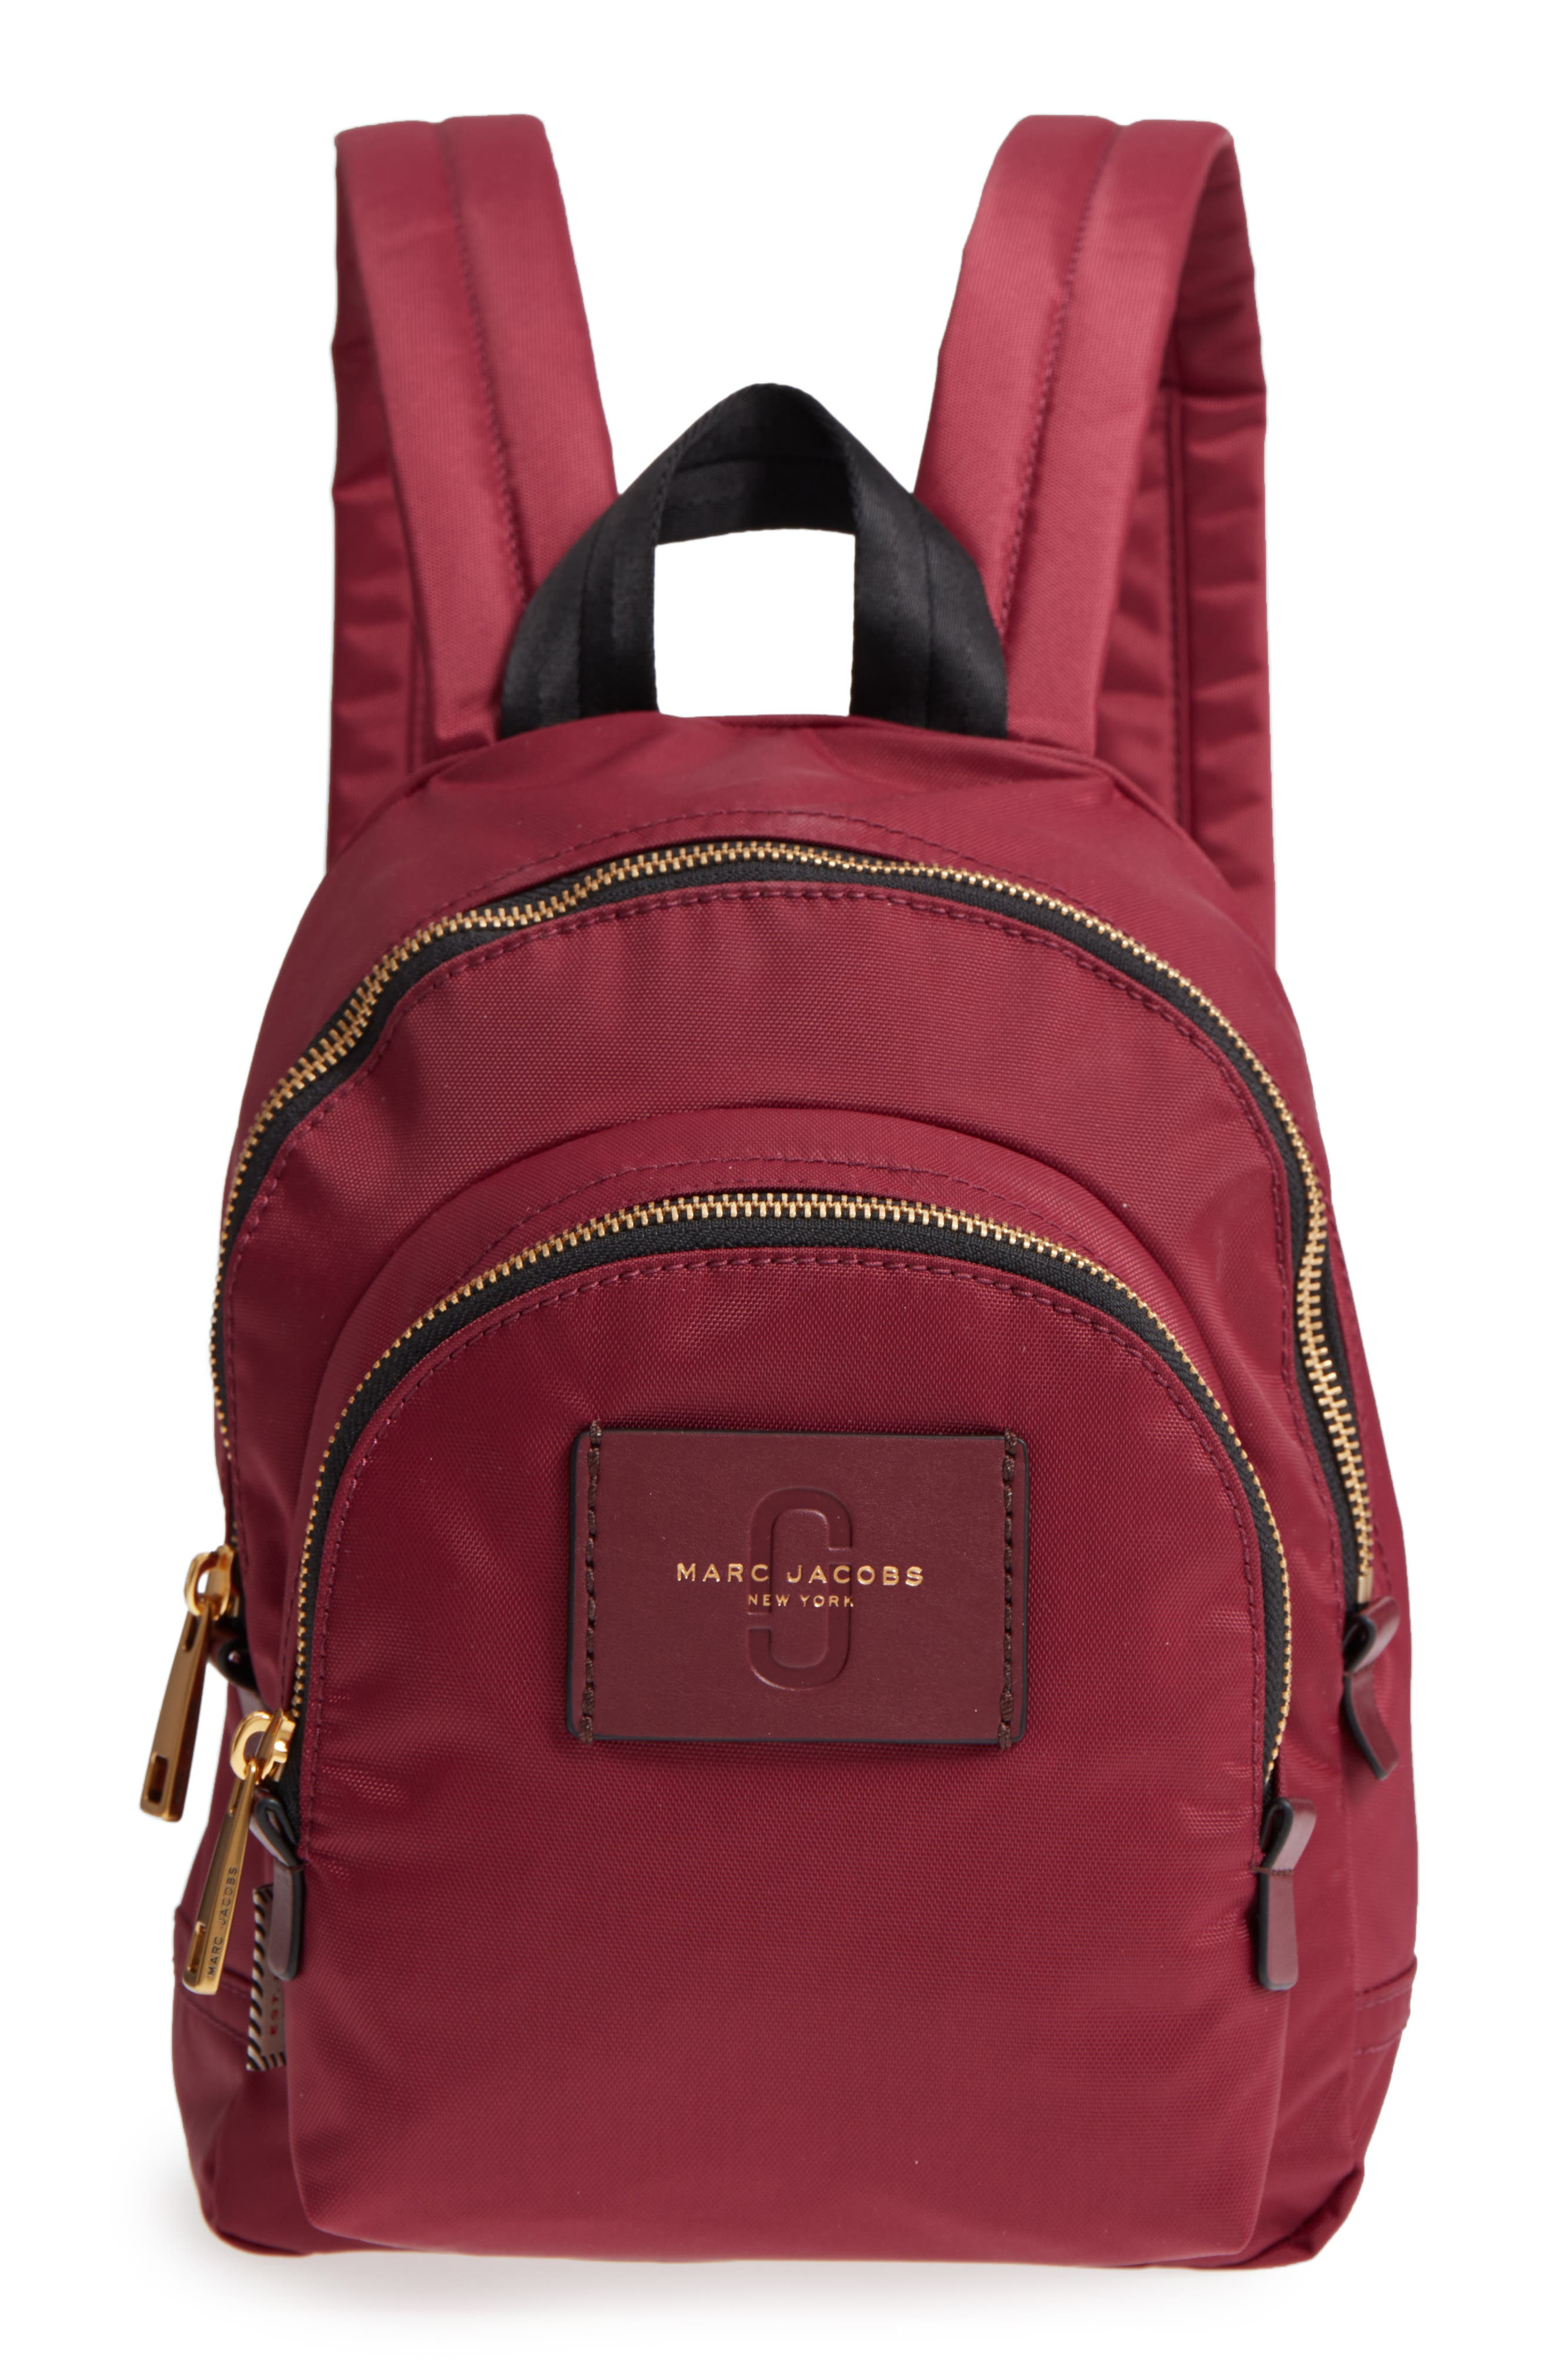 MARC JACOBS Mini Double Pack Nylon Backpack